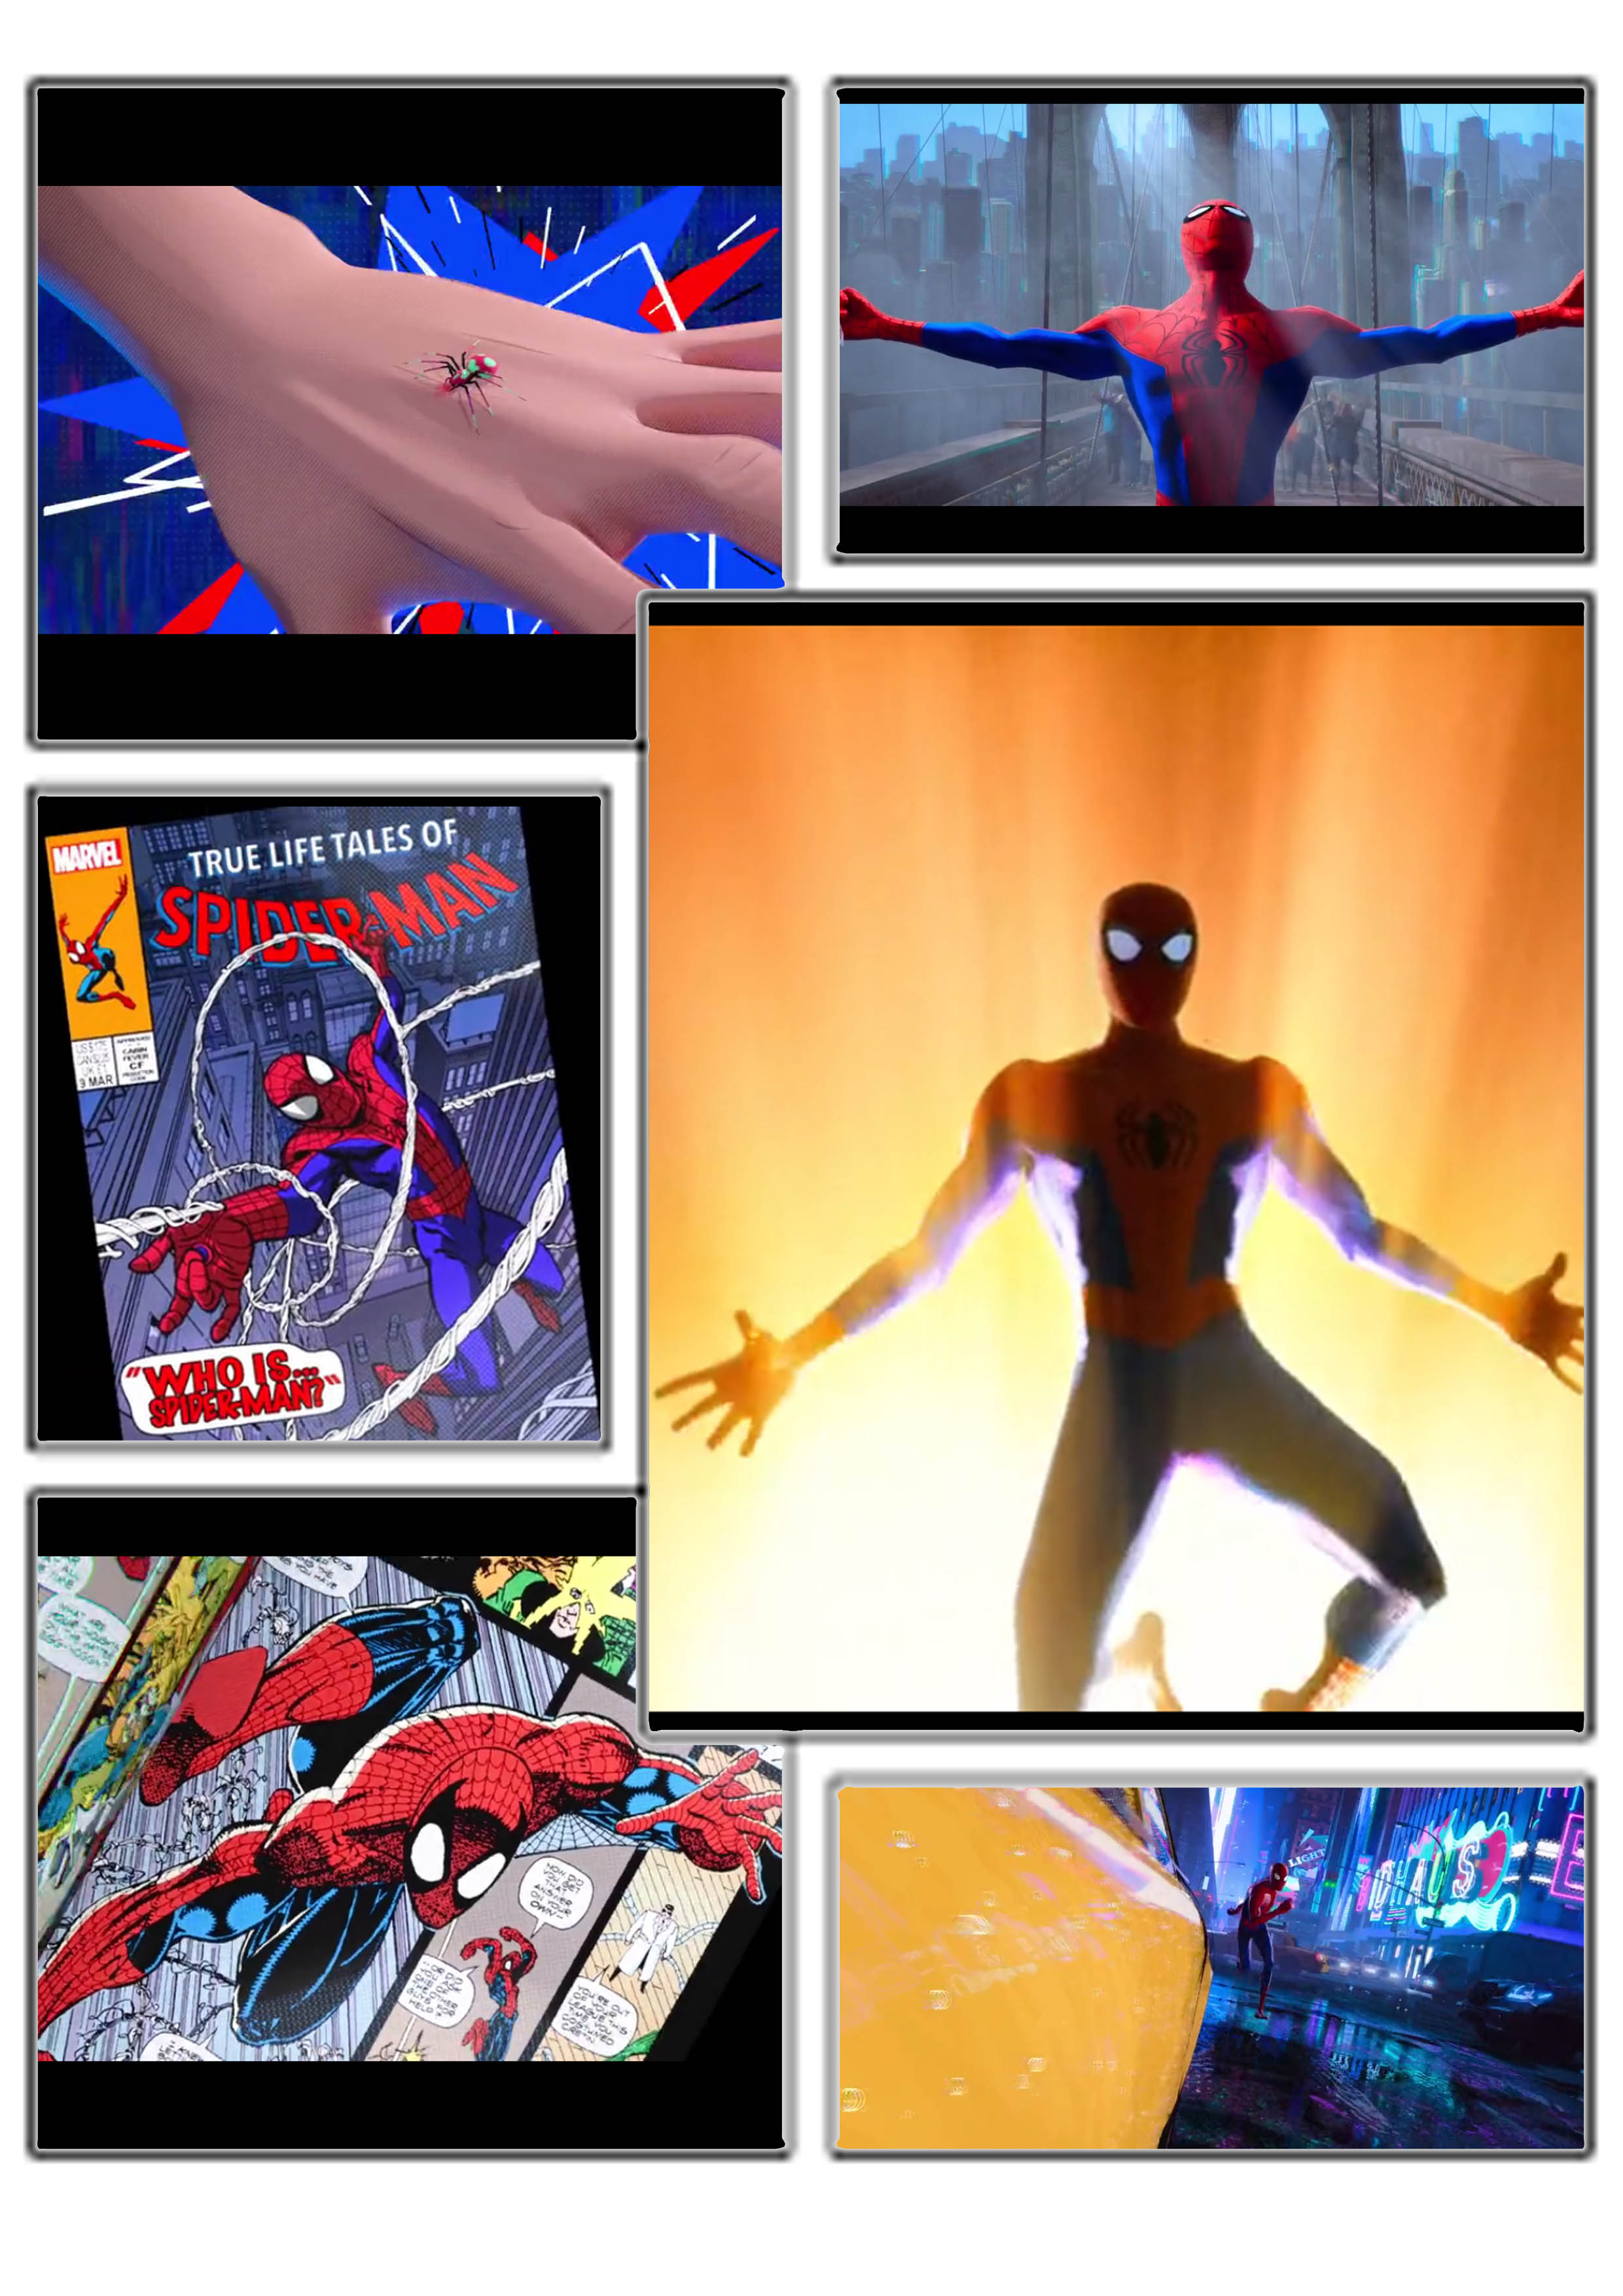 spiderman summary comic frame